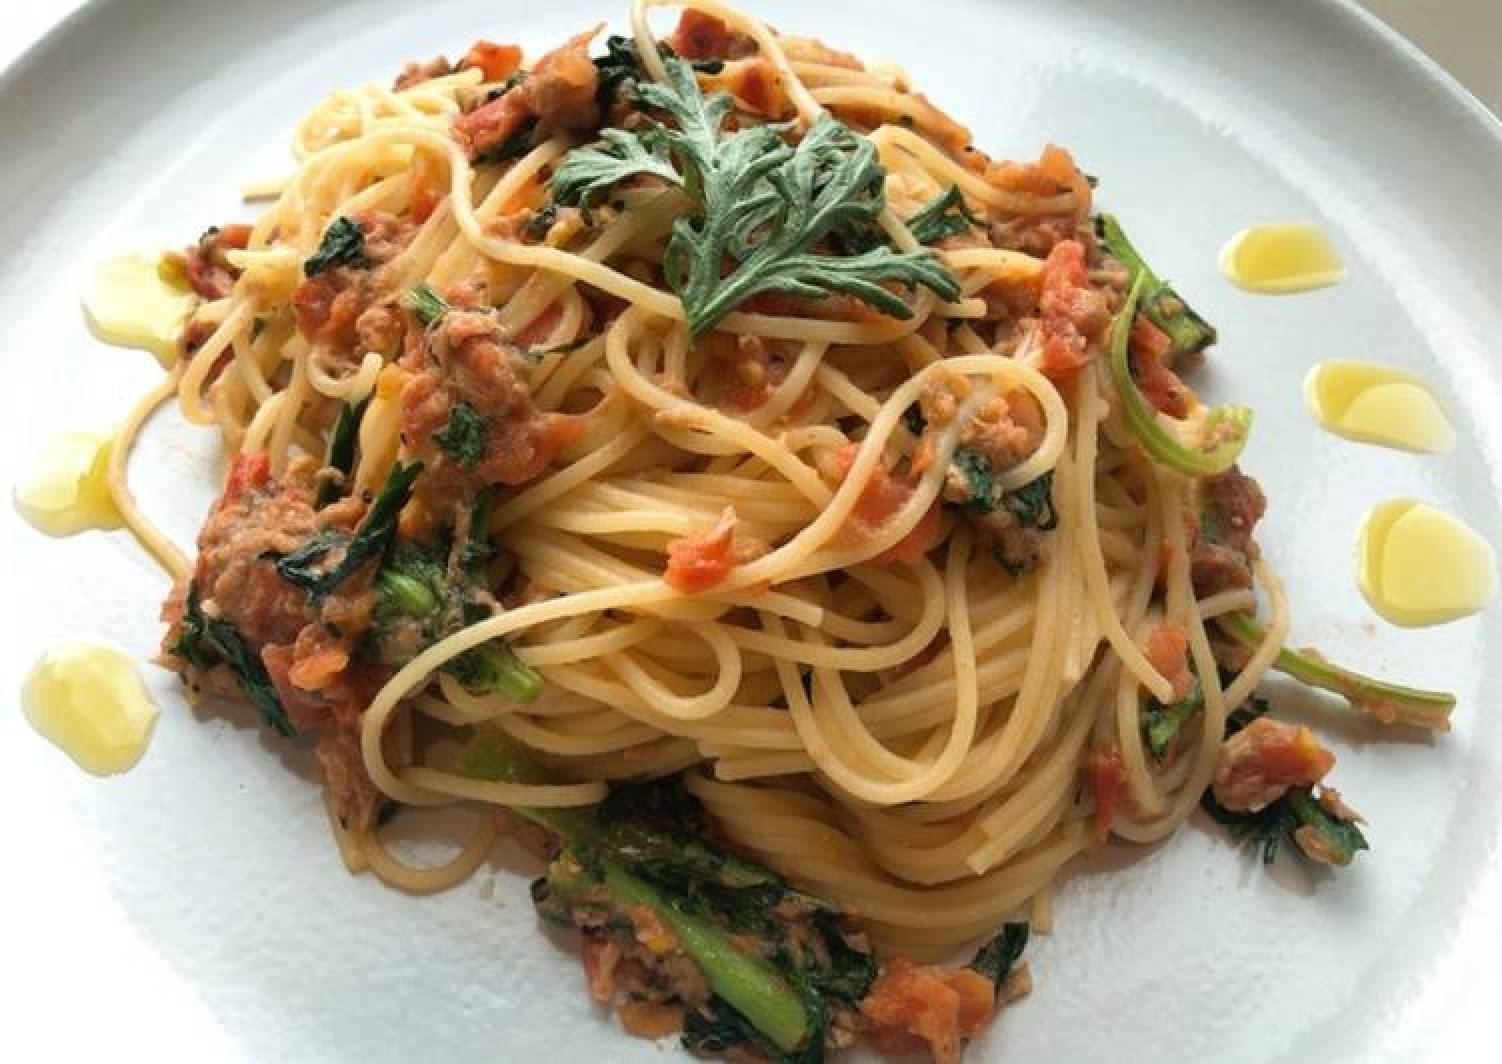 Spring chrysanthemum pasta with tuna and tomatoes